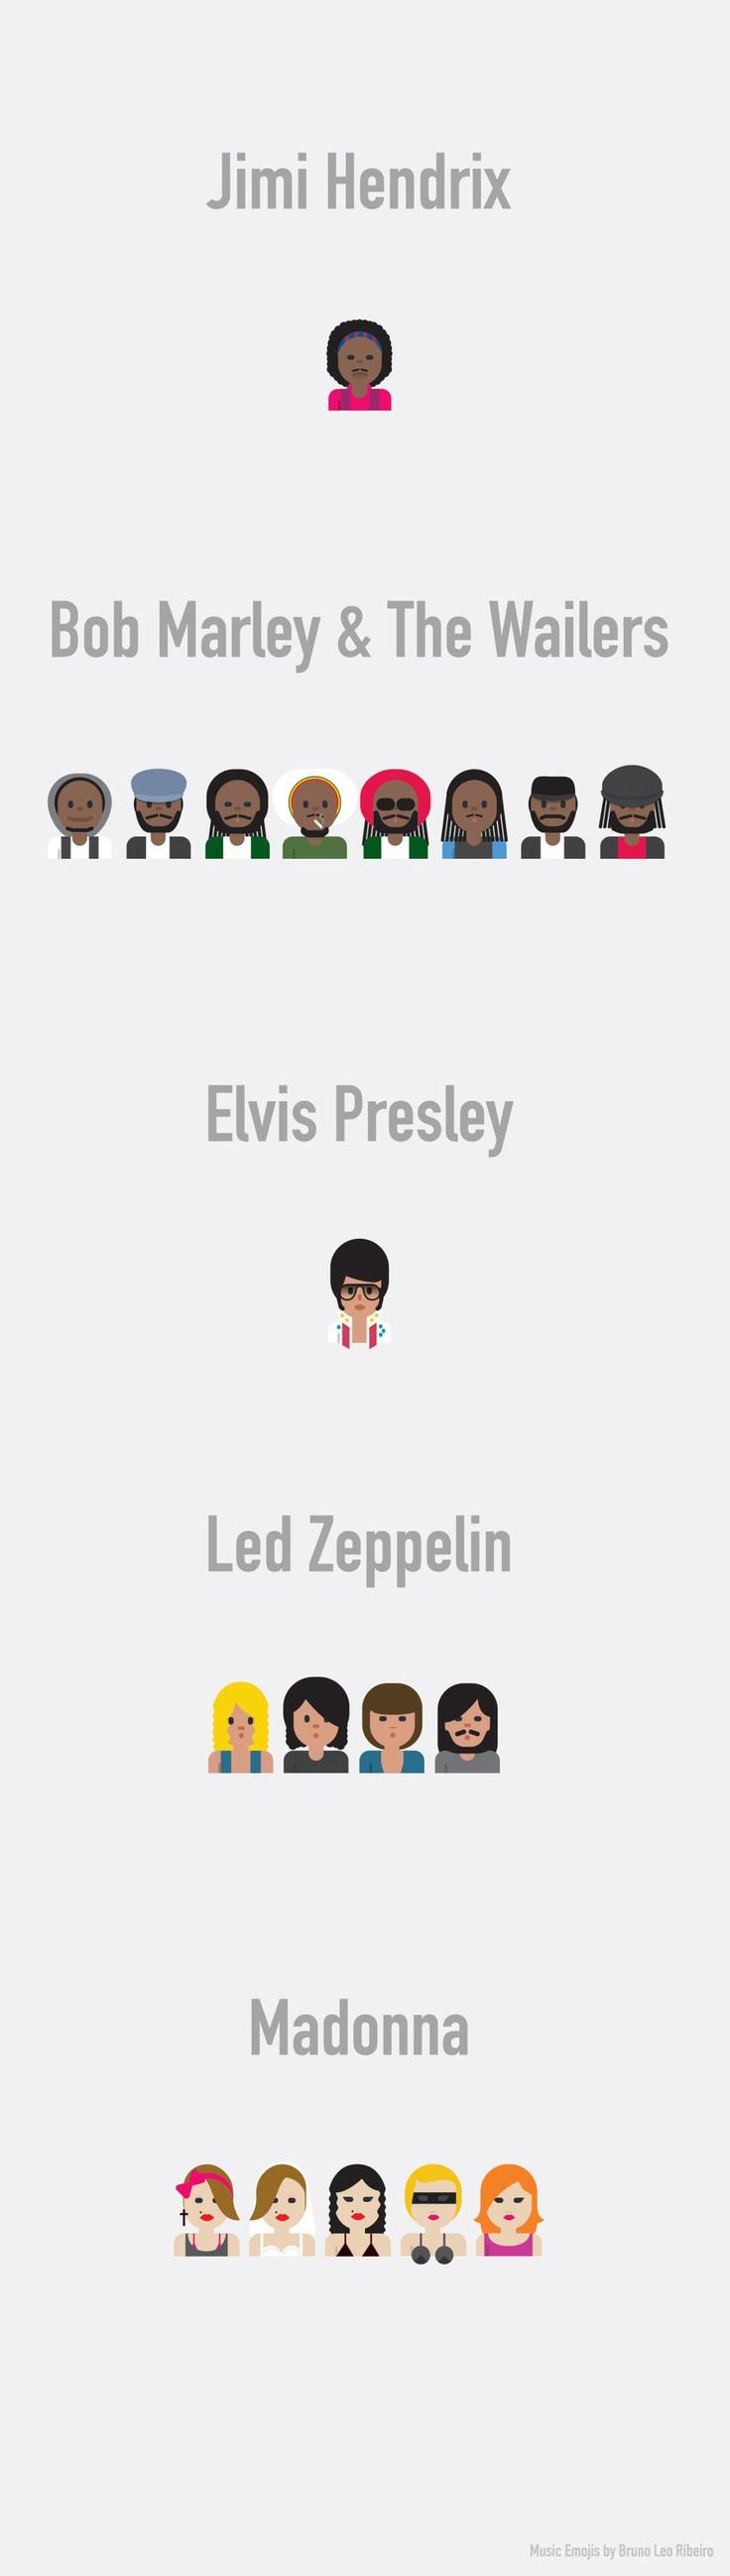 Microsoft emoji list emojistwitter emoji list emojis - Artist Pays Homage To The Rock N Roll Gods By Turning Them Into Emoji